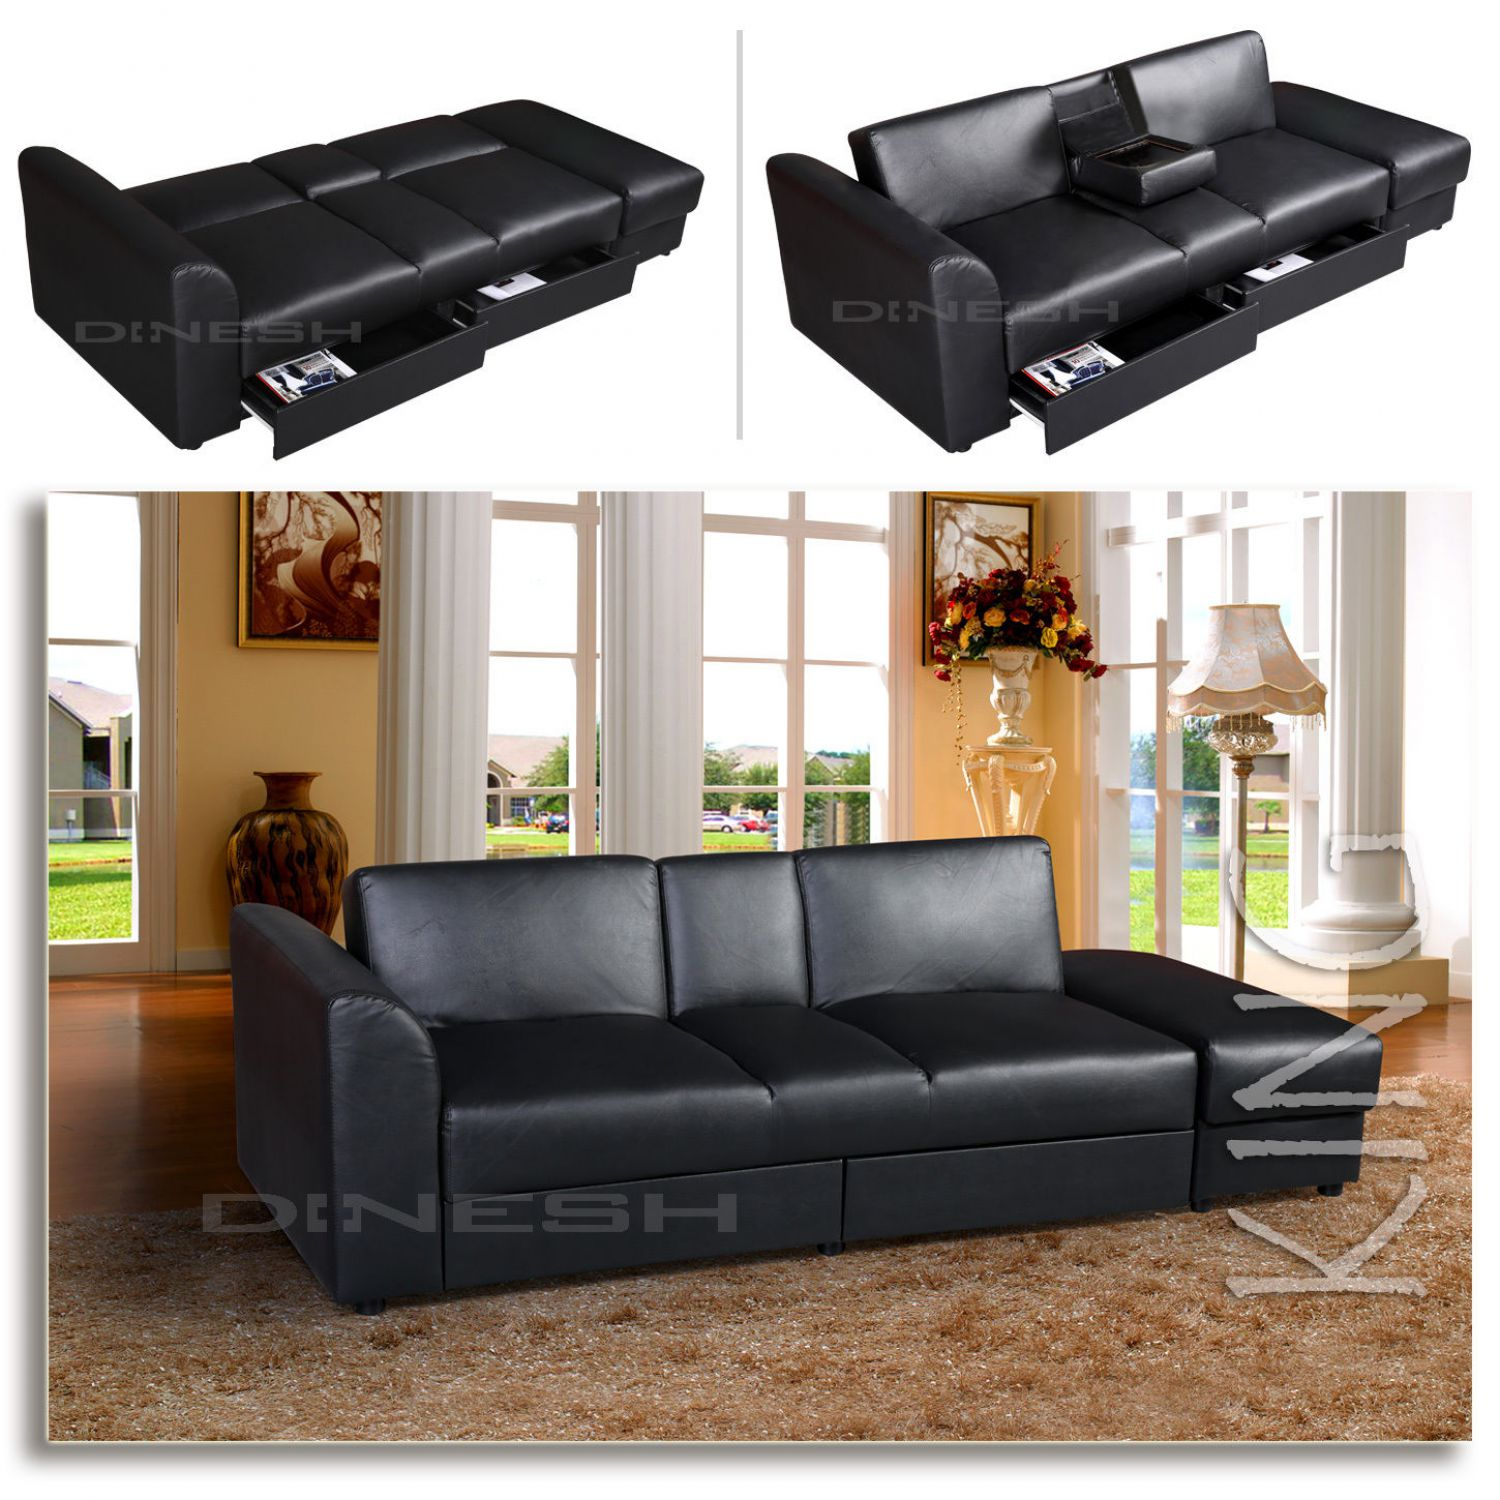 king funktionssofa schwarz schlafsofa sofa kunstleder bettsofa lounge couch ebay. Black Bedroom Furniture Sets. Home Design Ideas